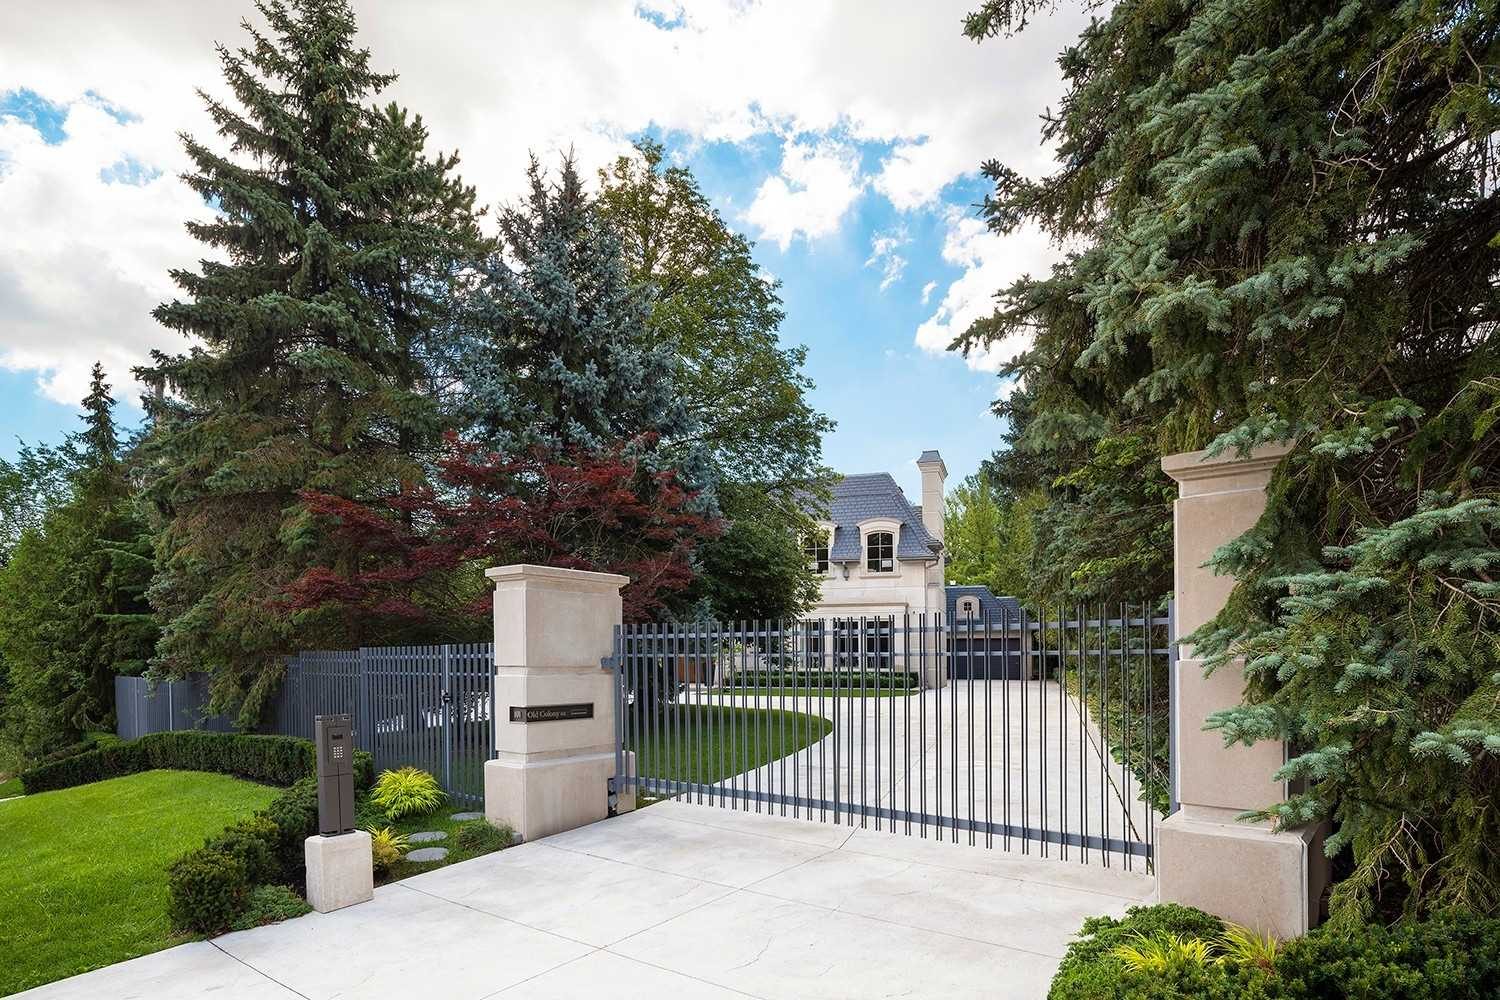 101 Old Colony Rd, Toronto, Ontario M2L2K3, 5 Bedrooms Bedrooms, 12 Rooms Rooms,9 BathroomsBathrooms,Detached,For Sale,Old Colony,C4857200